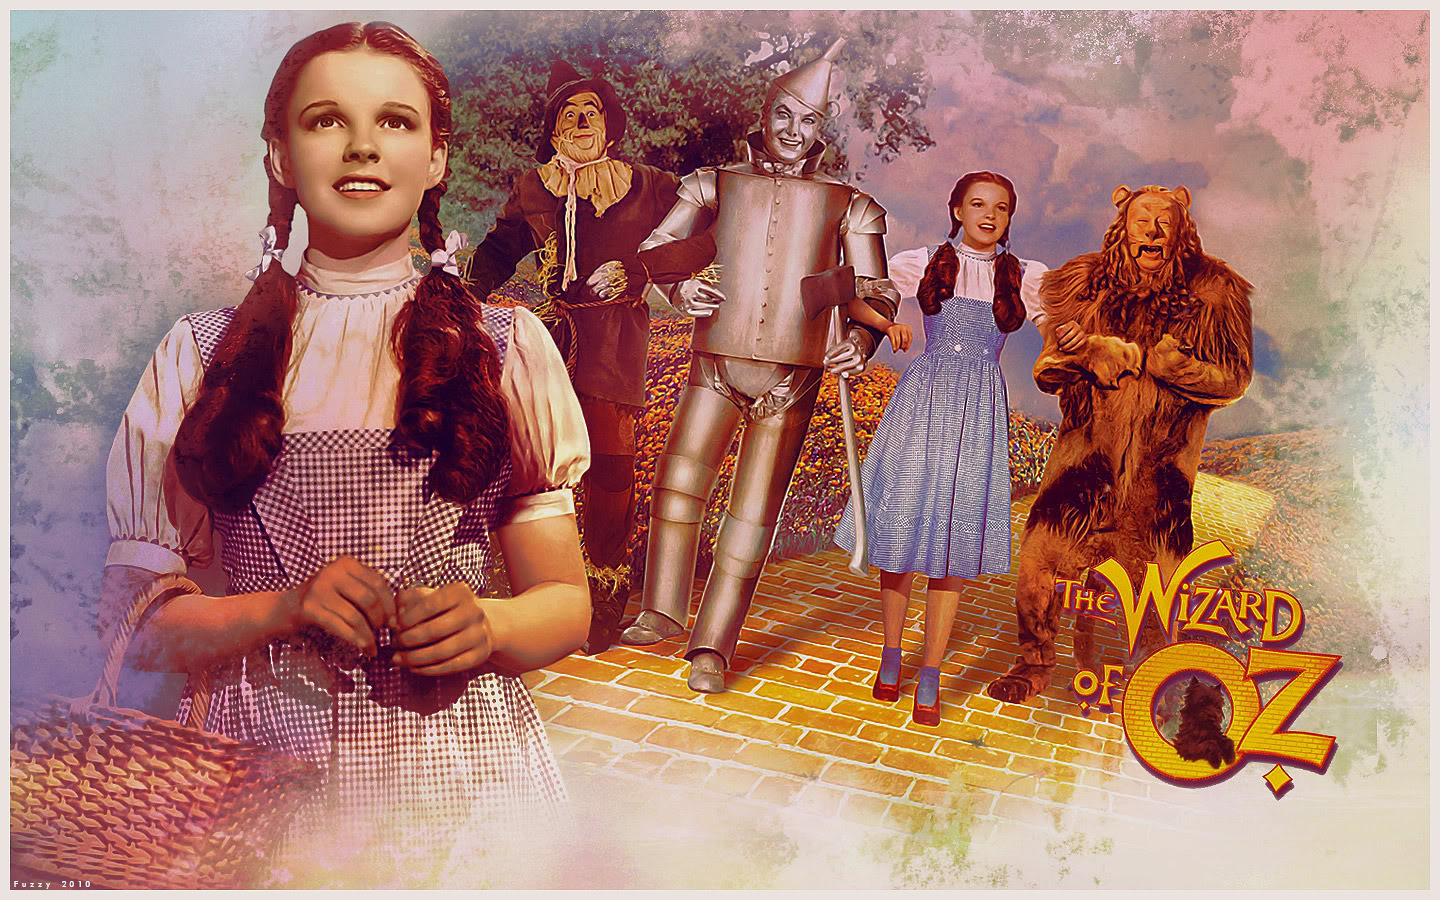 Wizard of oz computer wallpaper wallpapersafari - The wizard of oz hd ...